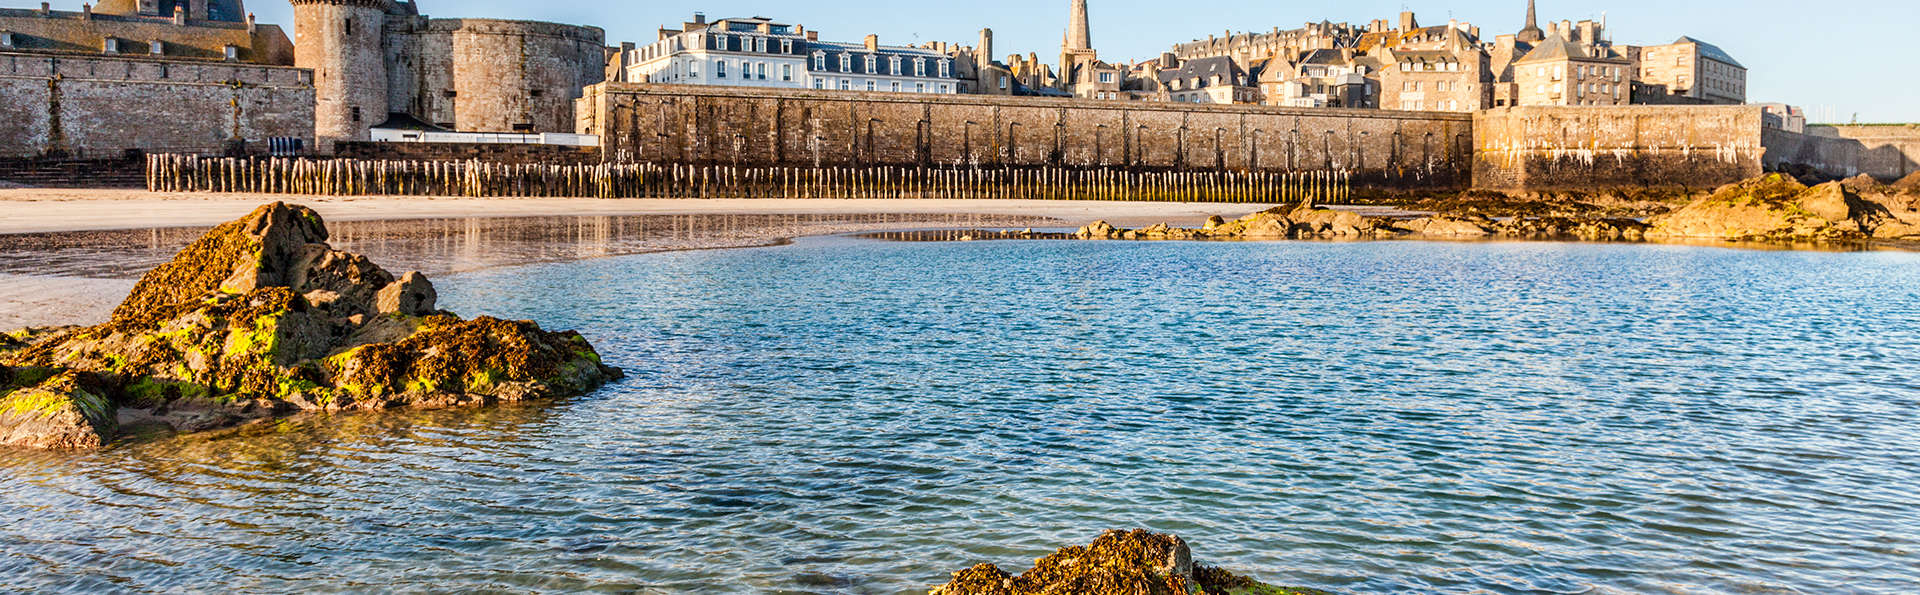 Grand Hotel Des Thermes 5 Saint Malo France